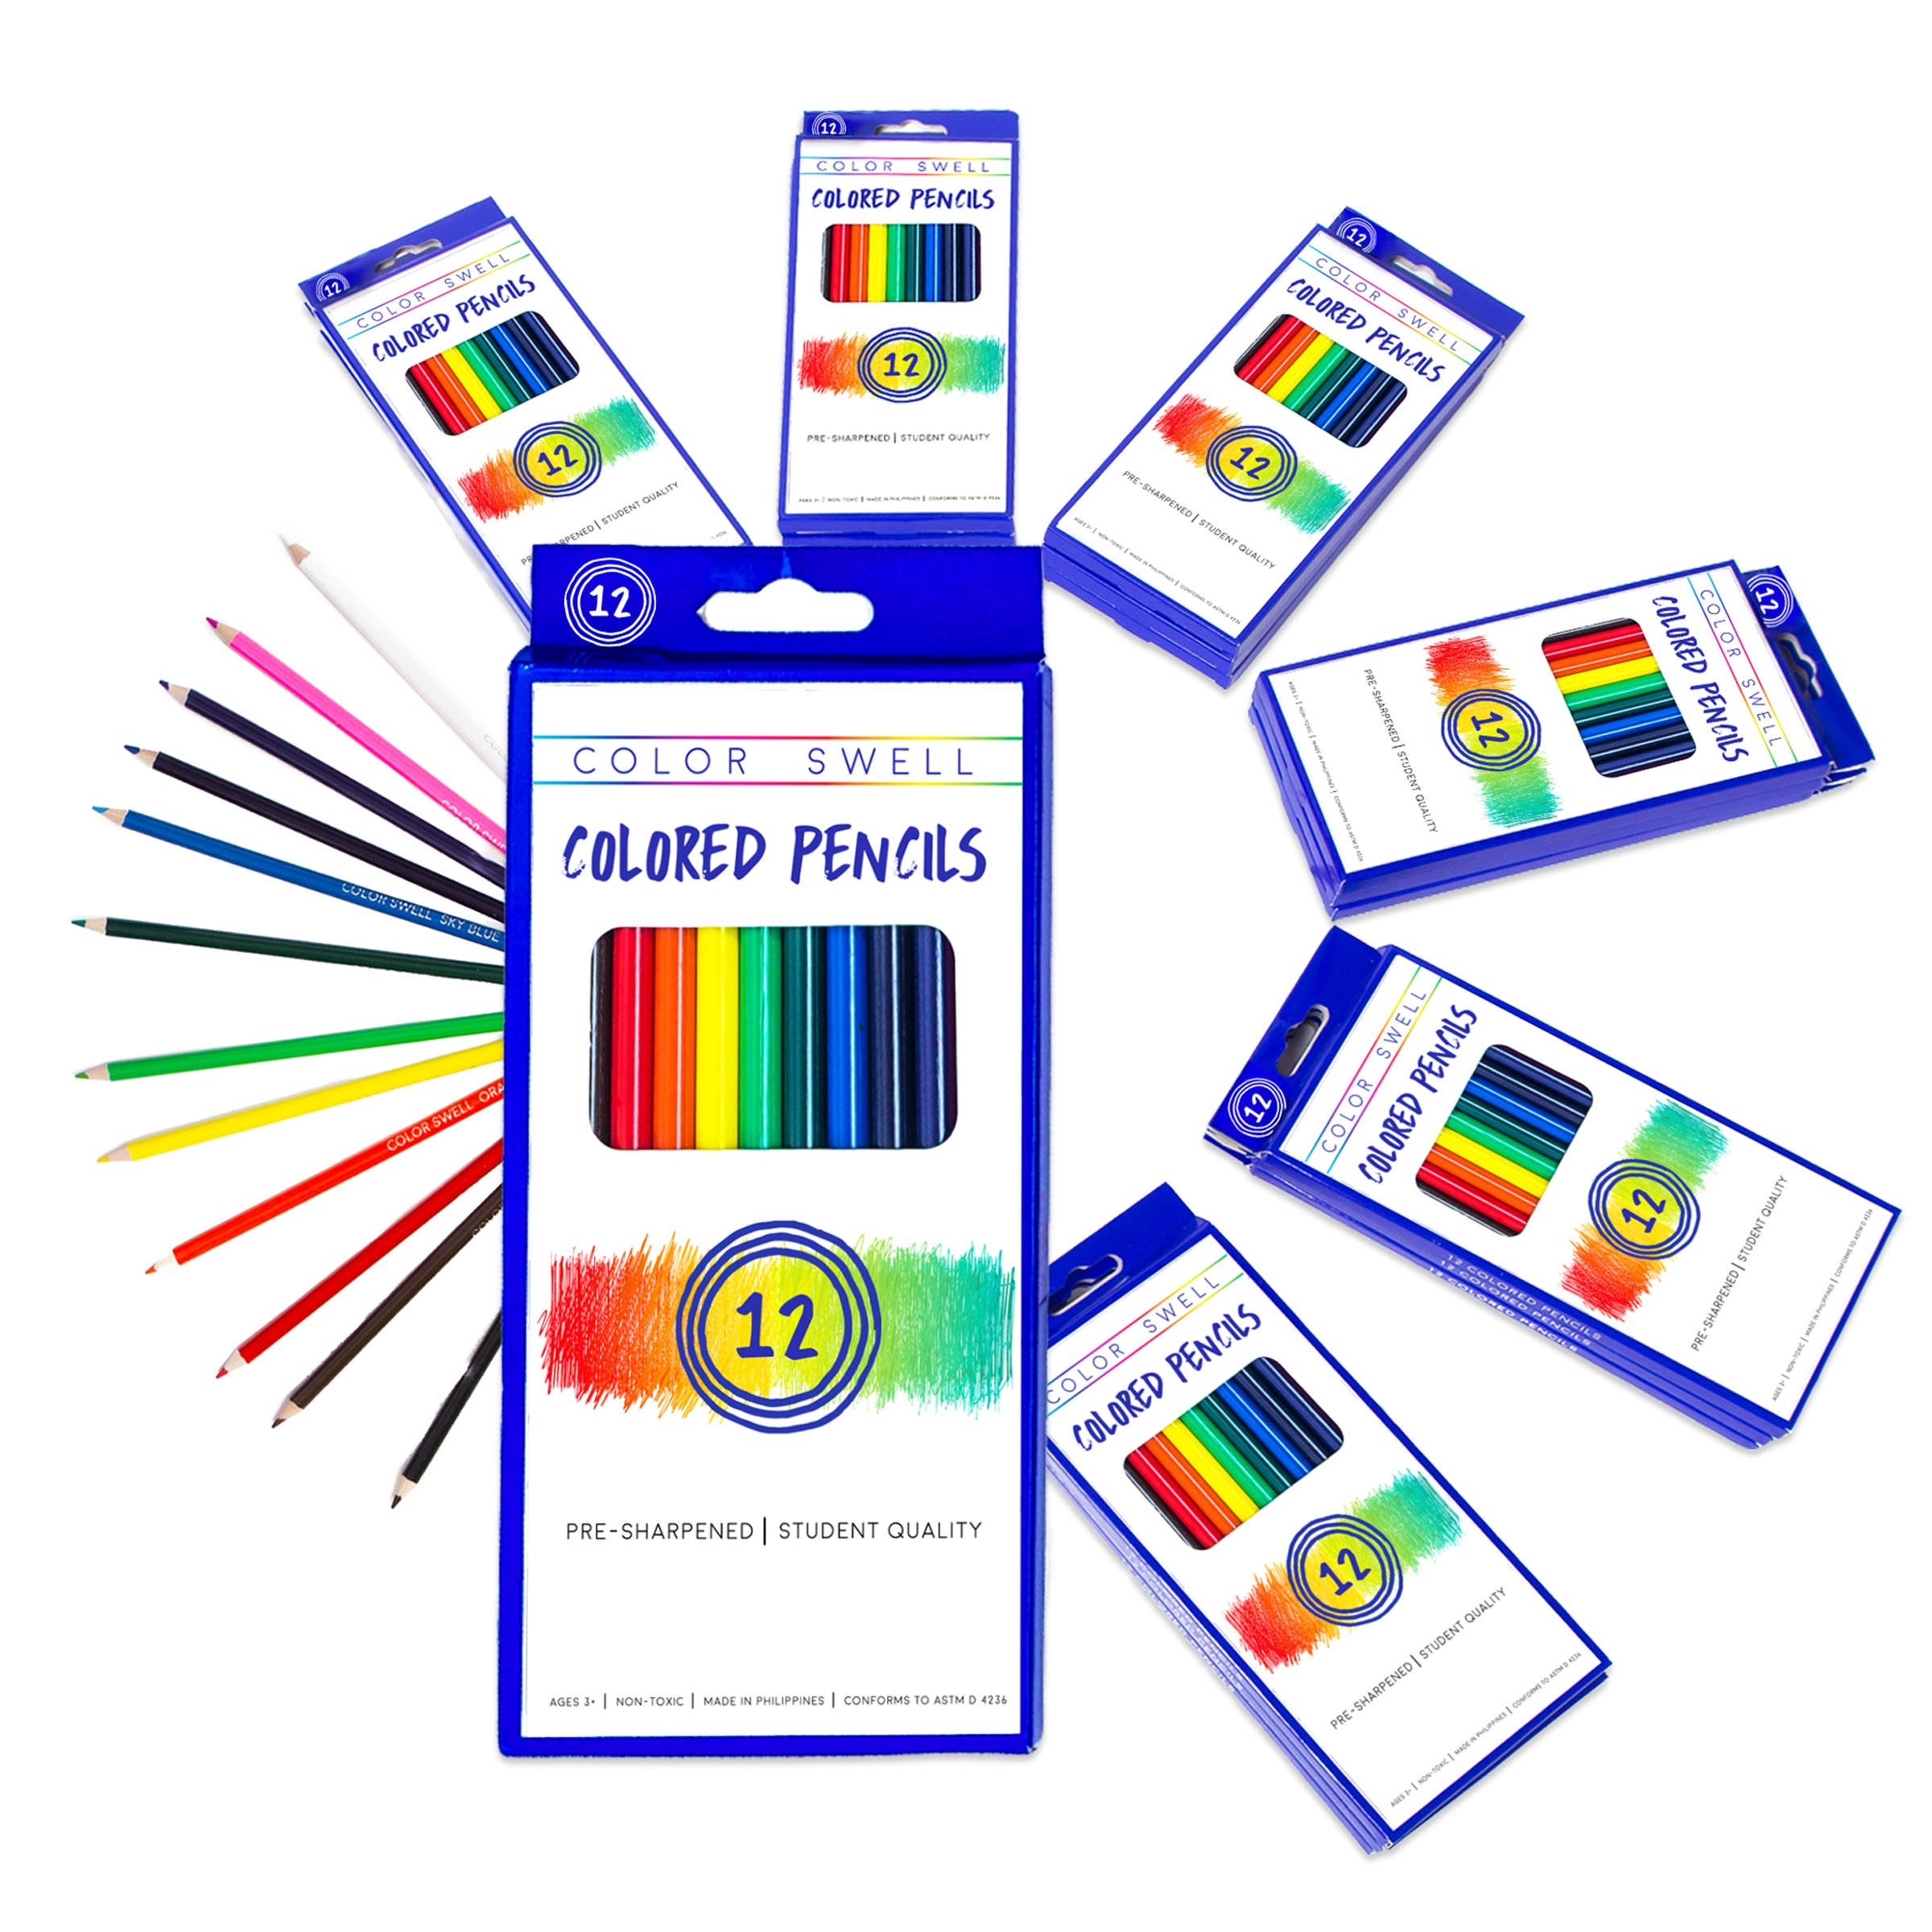 Color Swell Colored Pencils Bulk Pack 30 Sets 12 Count Assorted Vibrant Colors 360 Total Perfect for Kids, Teachers and Classrooms